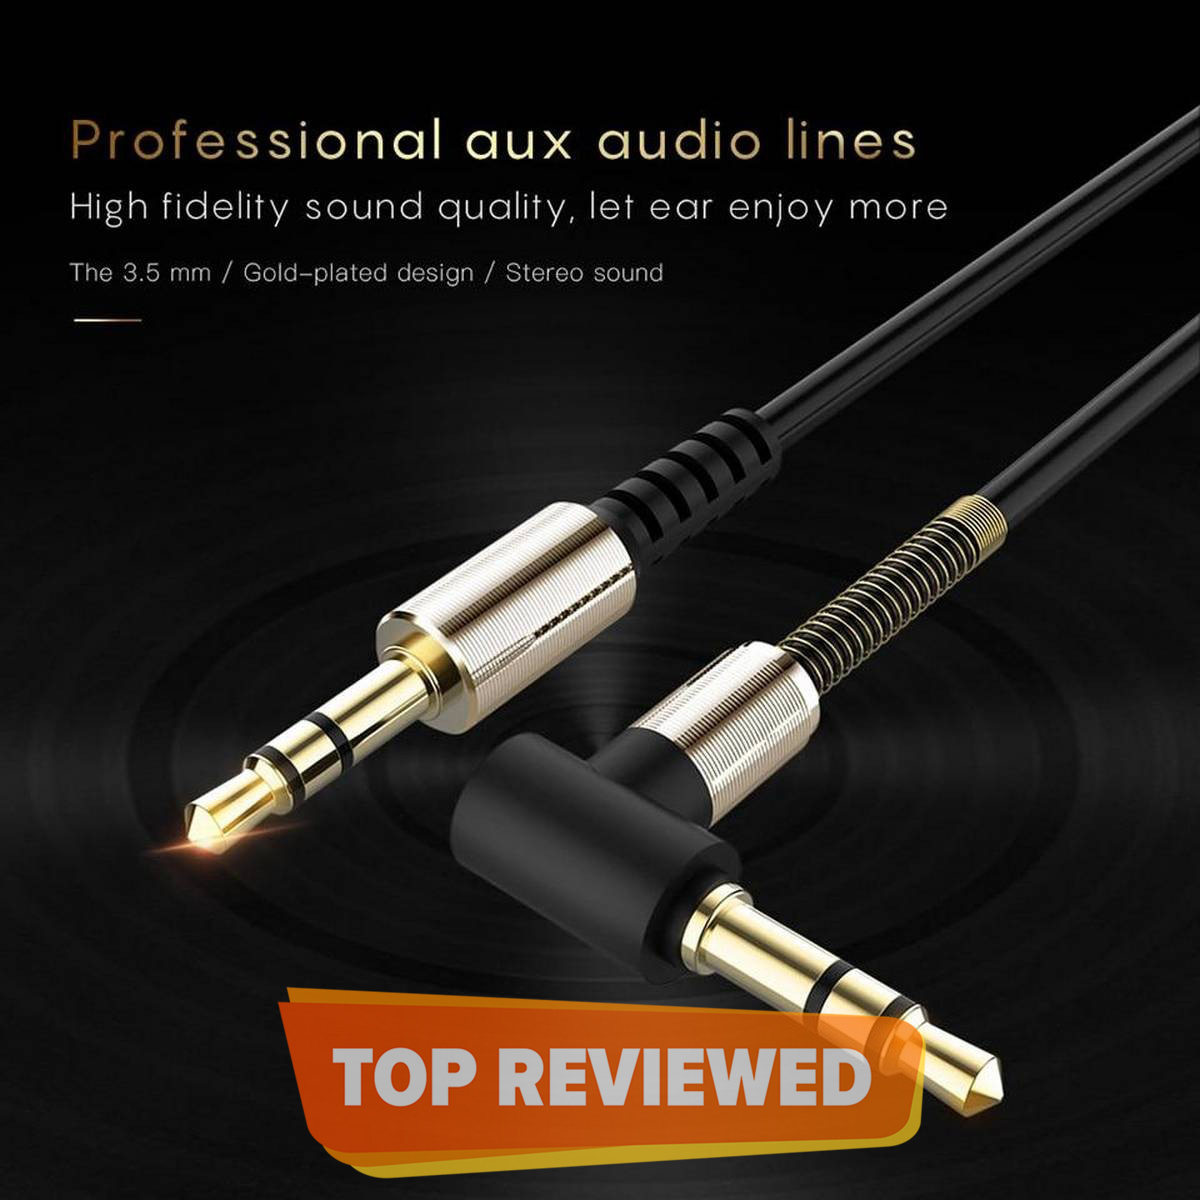 1.5 Meter 3.5mm AUX Cable L-Shaped Spring highly Durable, Male to Male For Speakers/Headphones/Deck/Car Connection from mobile to Amplifiers